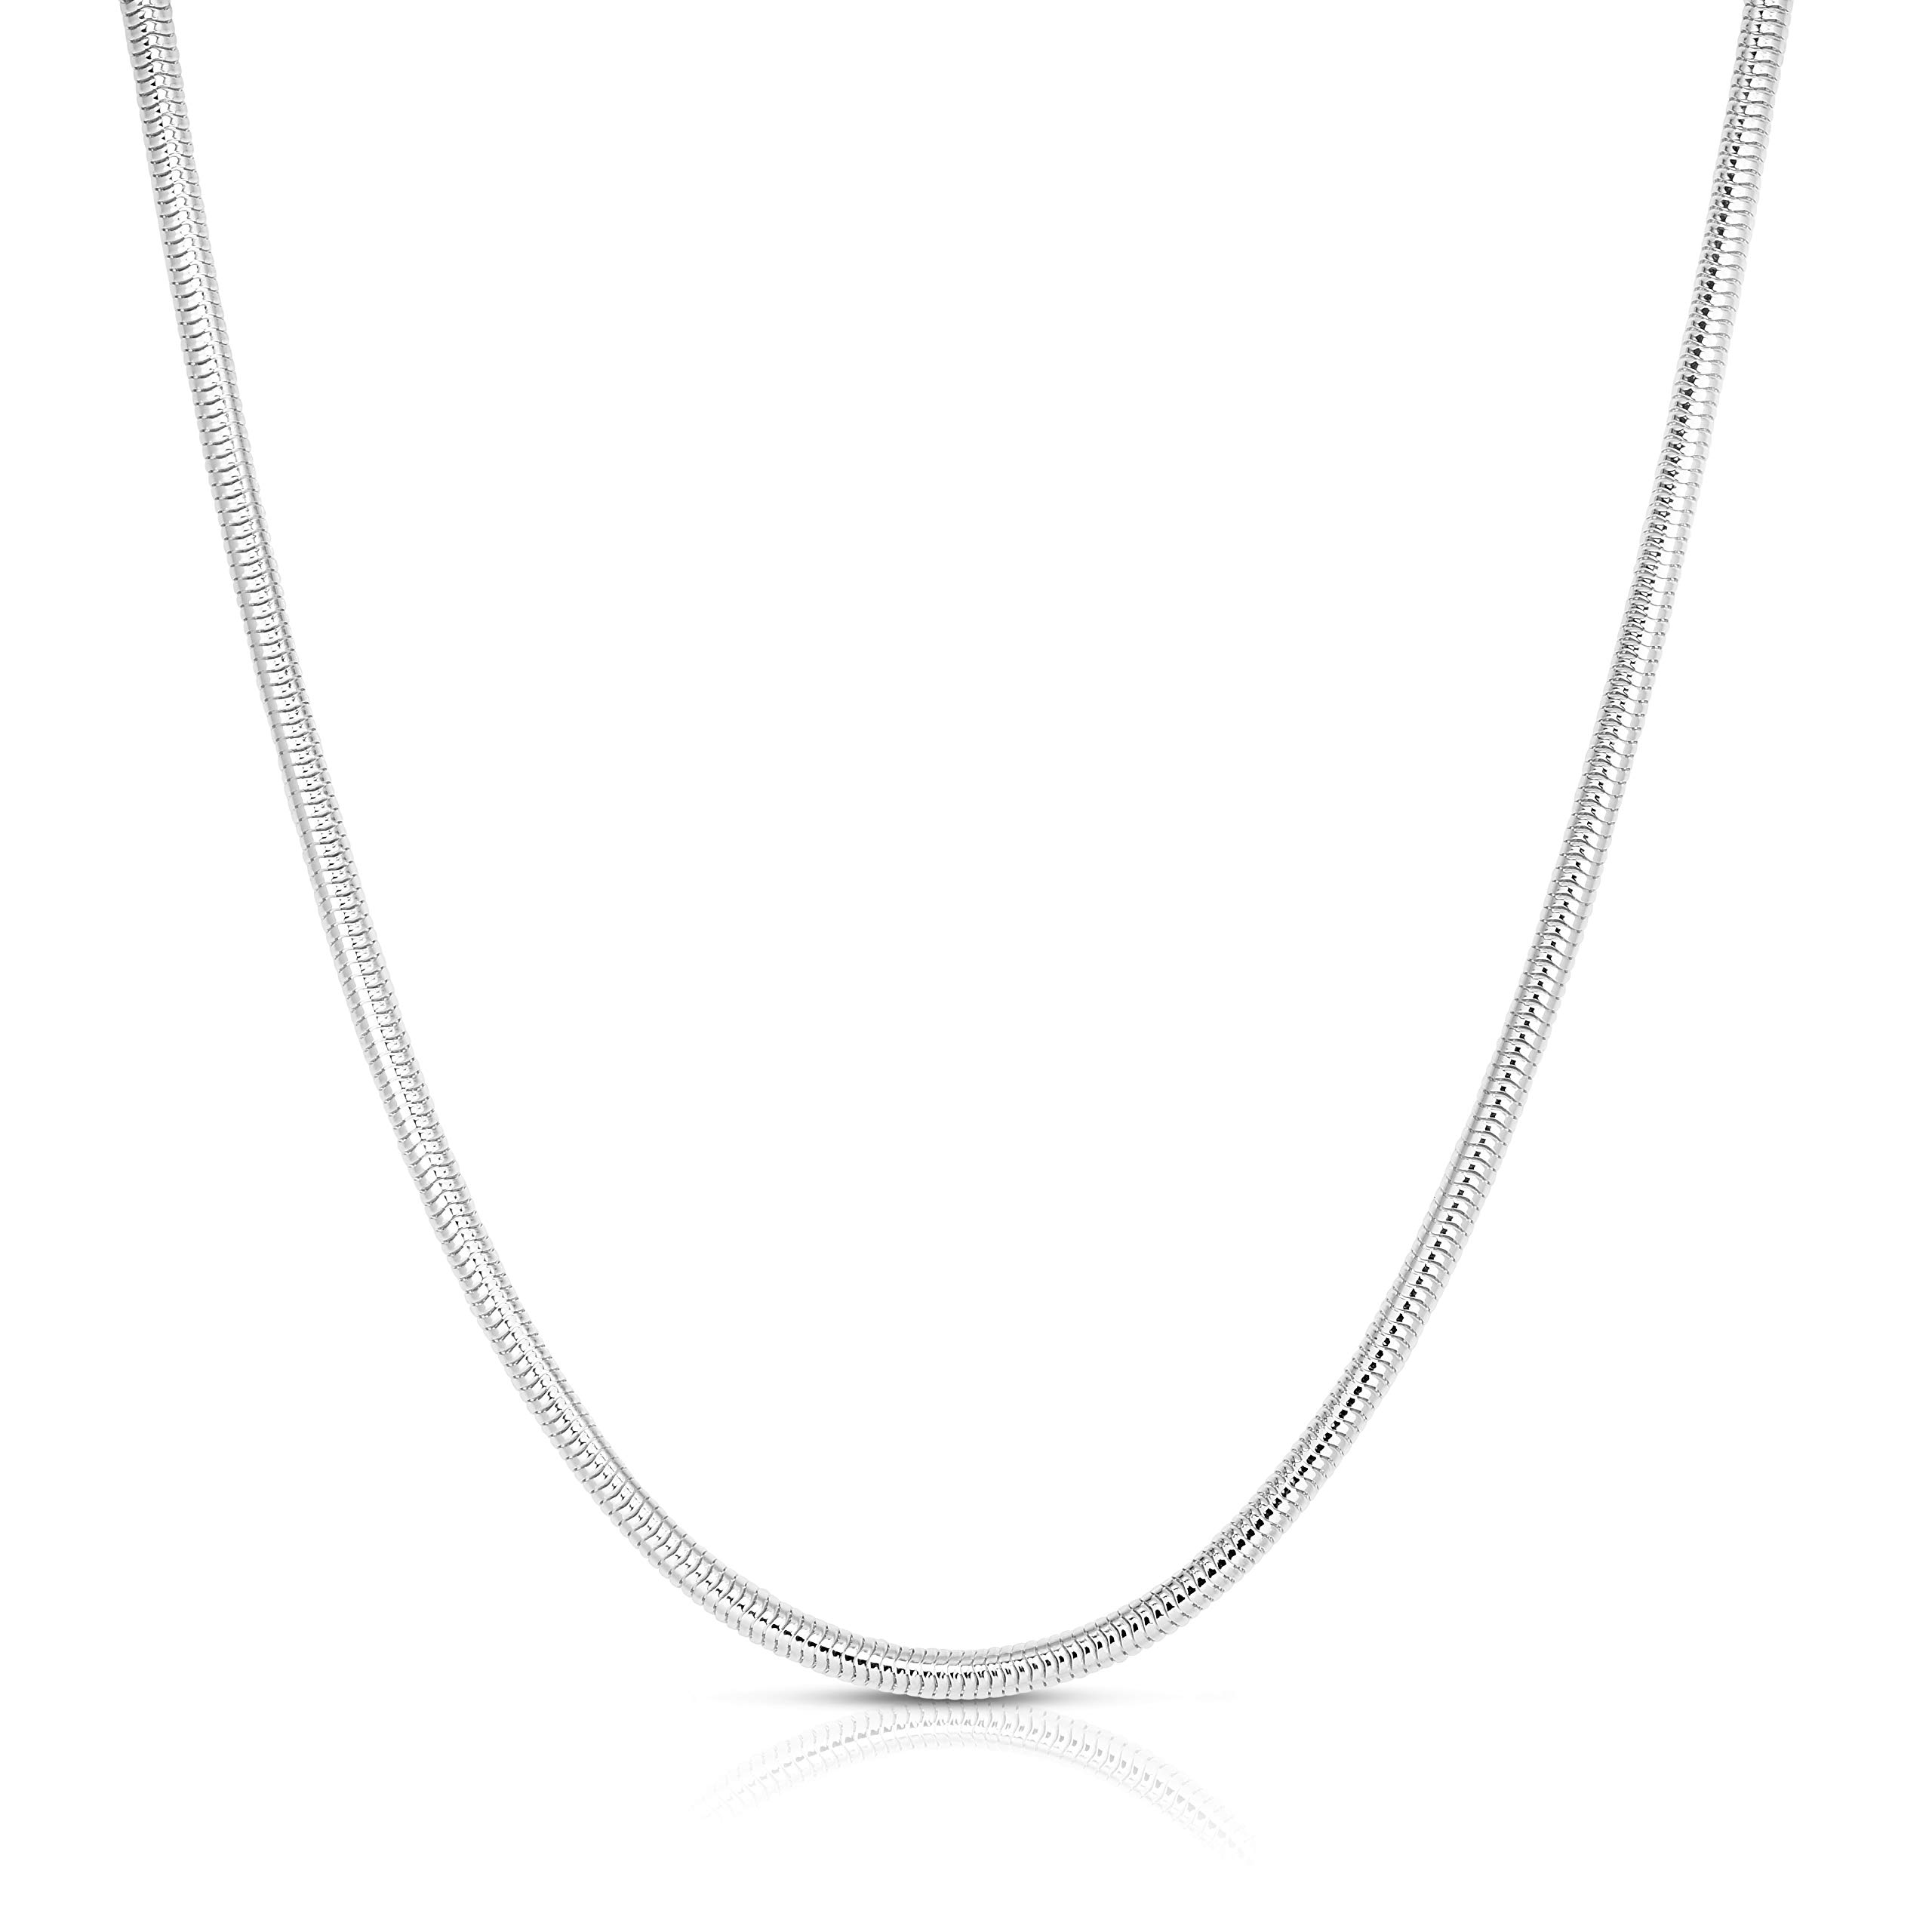 ARGENTO REALE 925 Sterling Silver 2MM-5MM Snake Chain Necklace, Round Flexible Italian Snake Chain Necklace 16-30